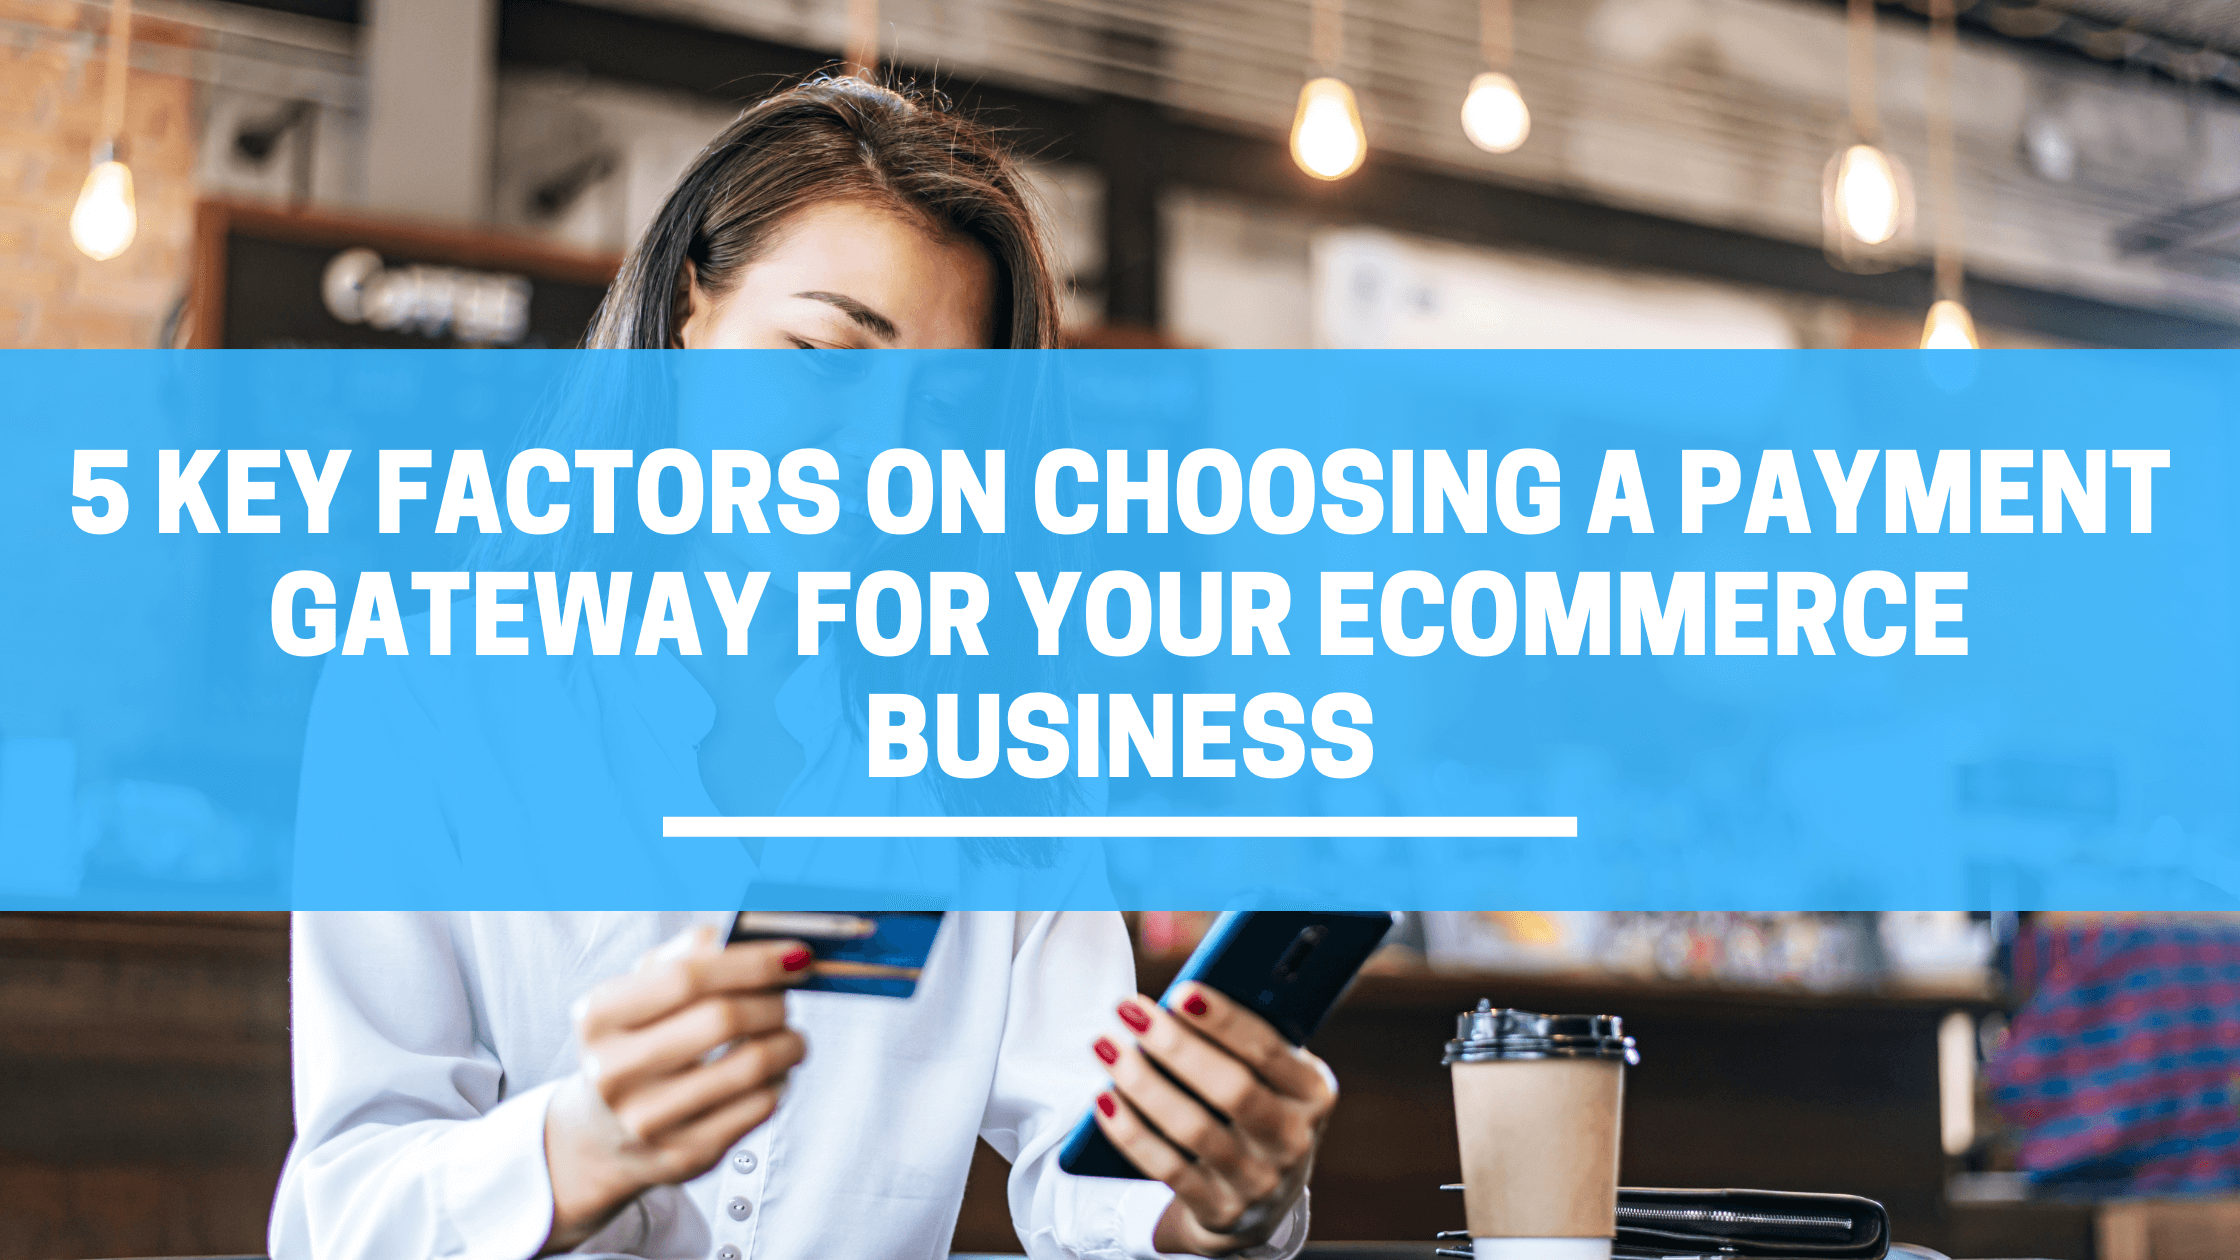 5 Key Factors On Choosing a Payment Gateway for Your Ecommerce Business